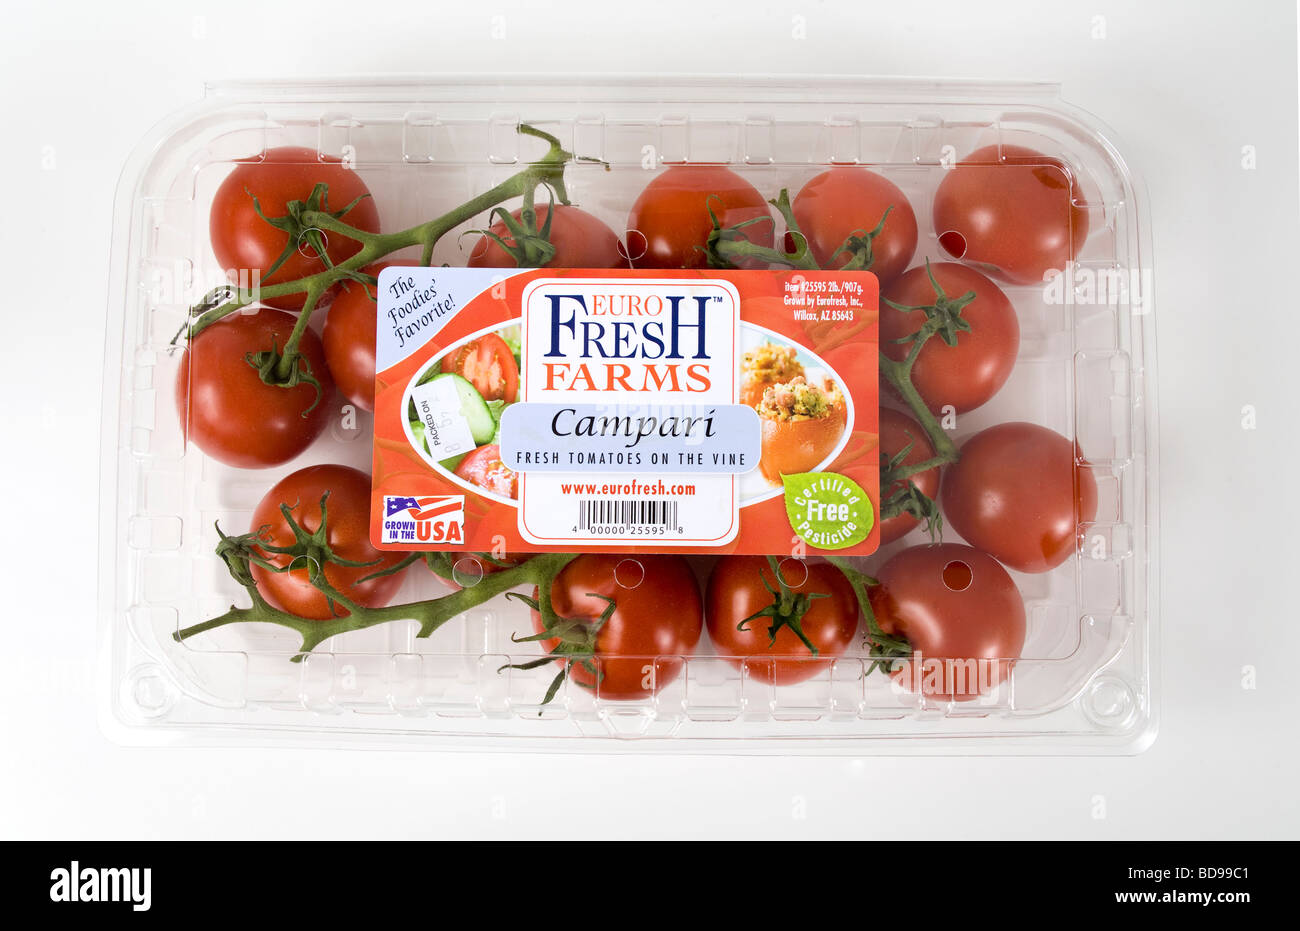 Label on package of organically grown tomatoes. - Stock Image